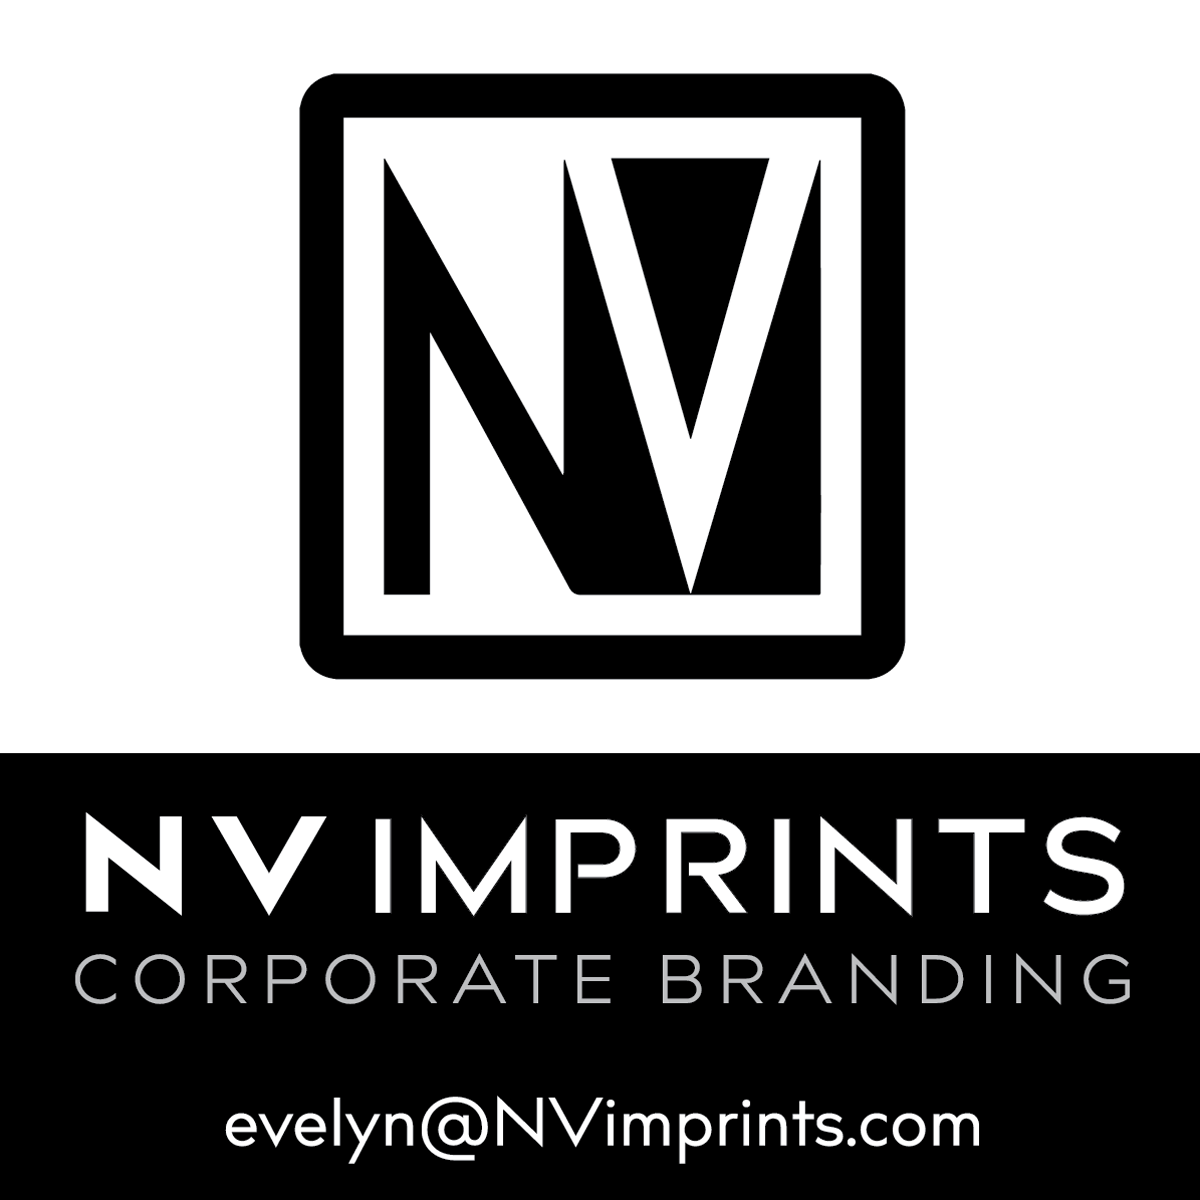 https://www.facebook.com/nvimprints